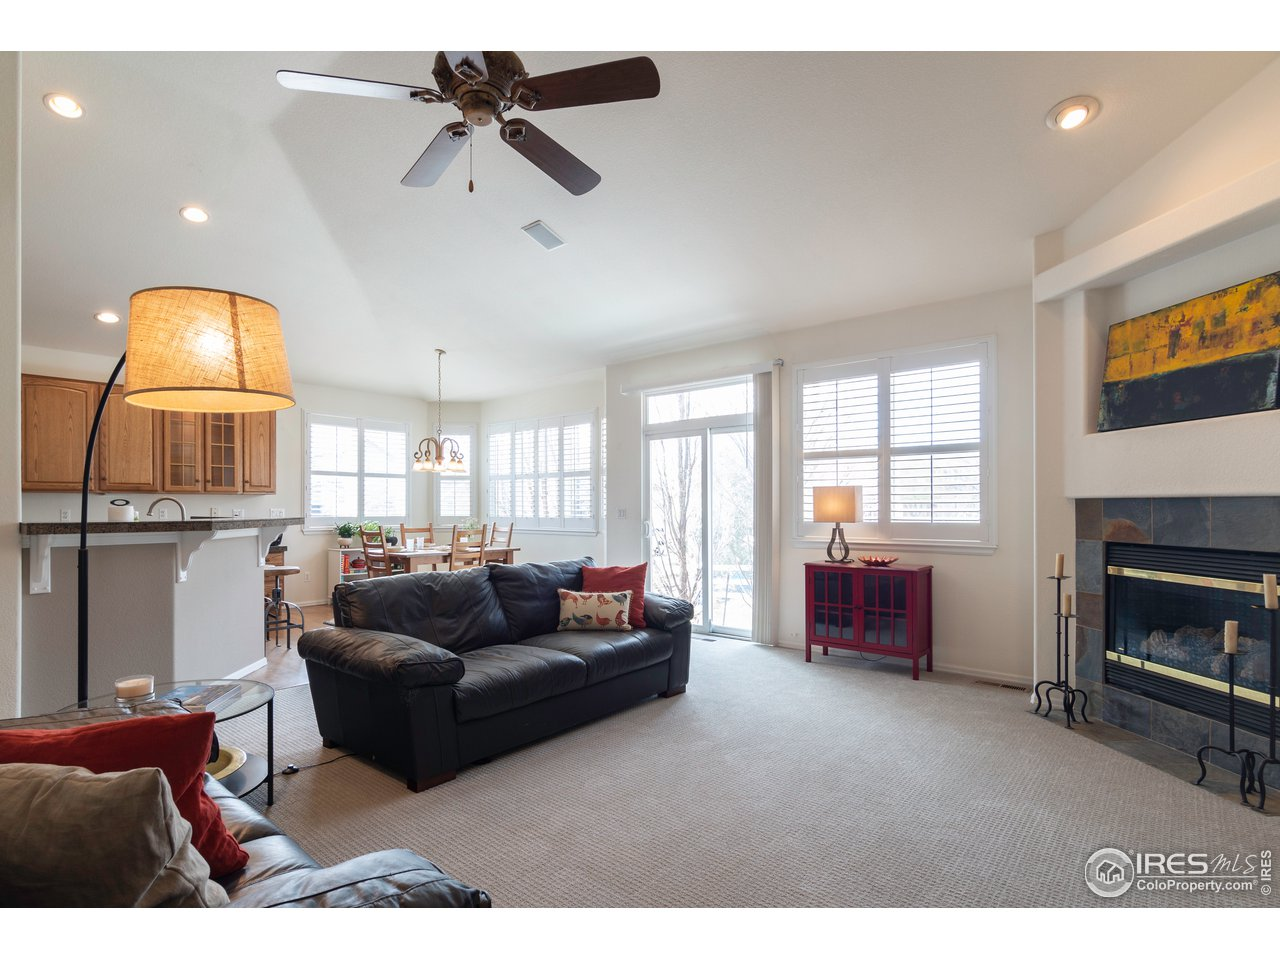 Vaulted ceilings, new carpet and new paint make this place fee fresh and clean!